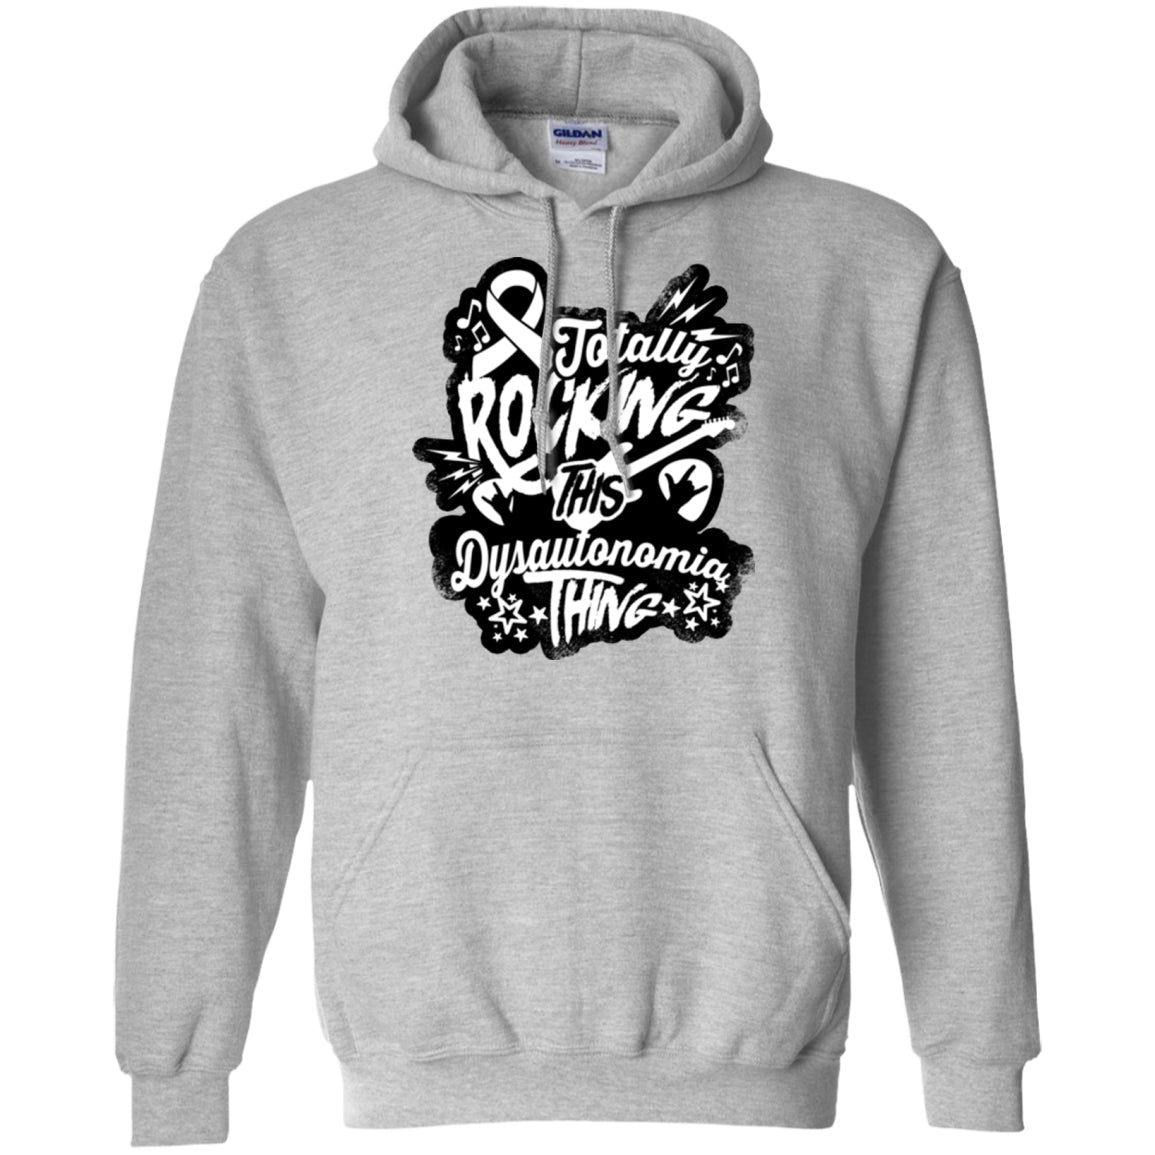 Rocking Dysautonomia Pullover Hoodie 8 oz. - The Unchargeables